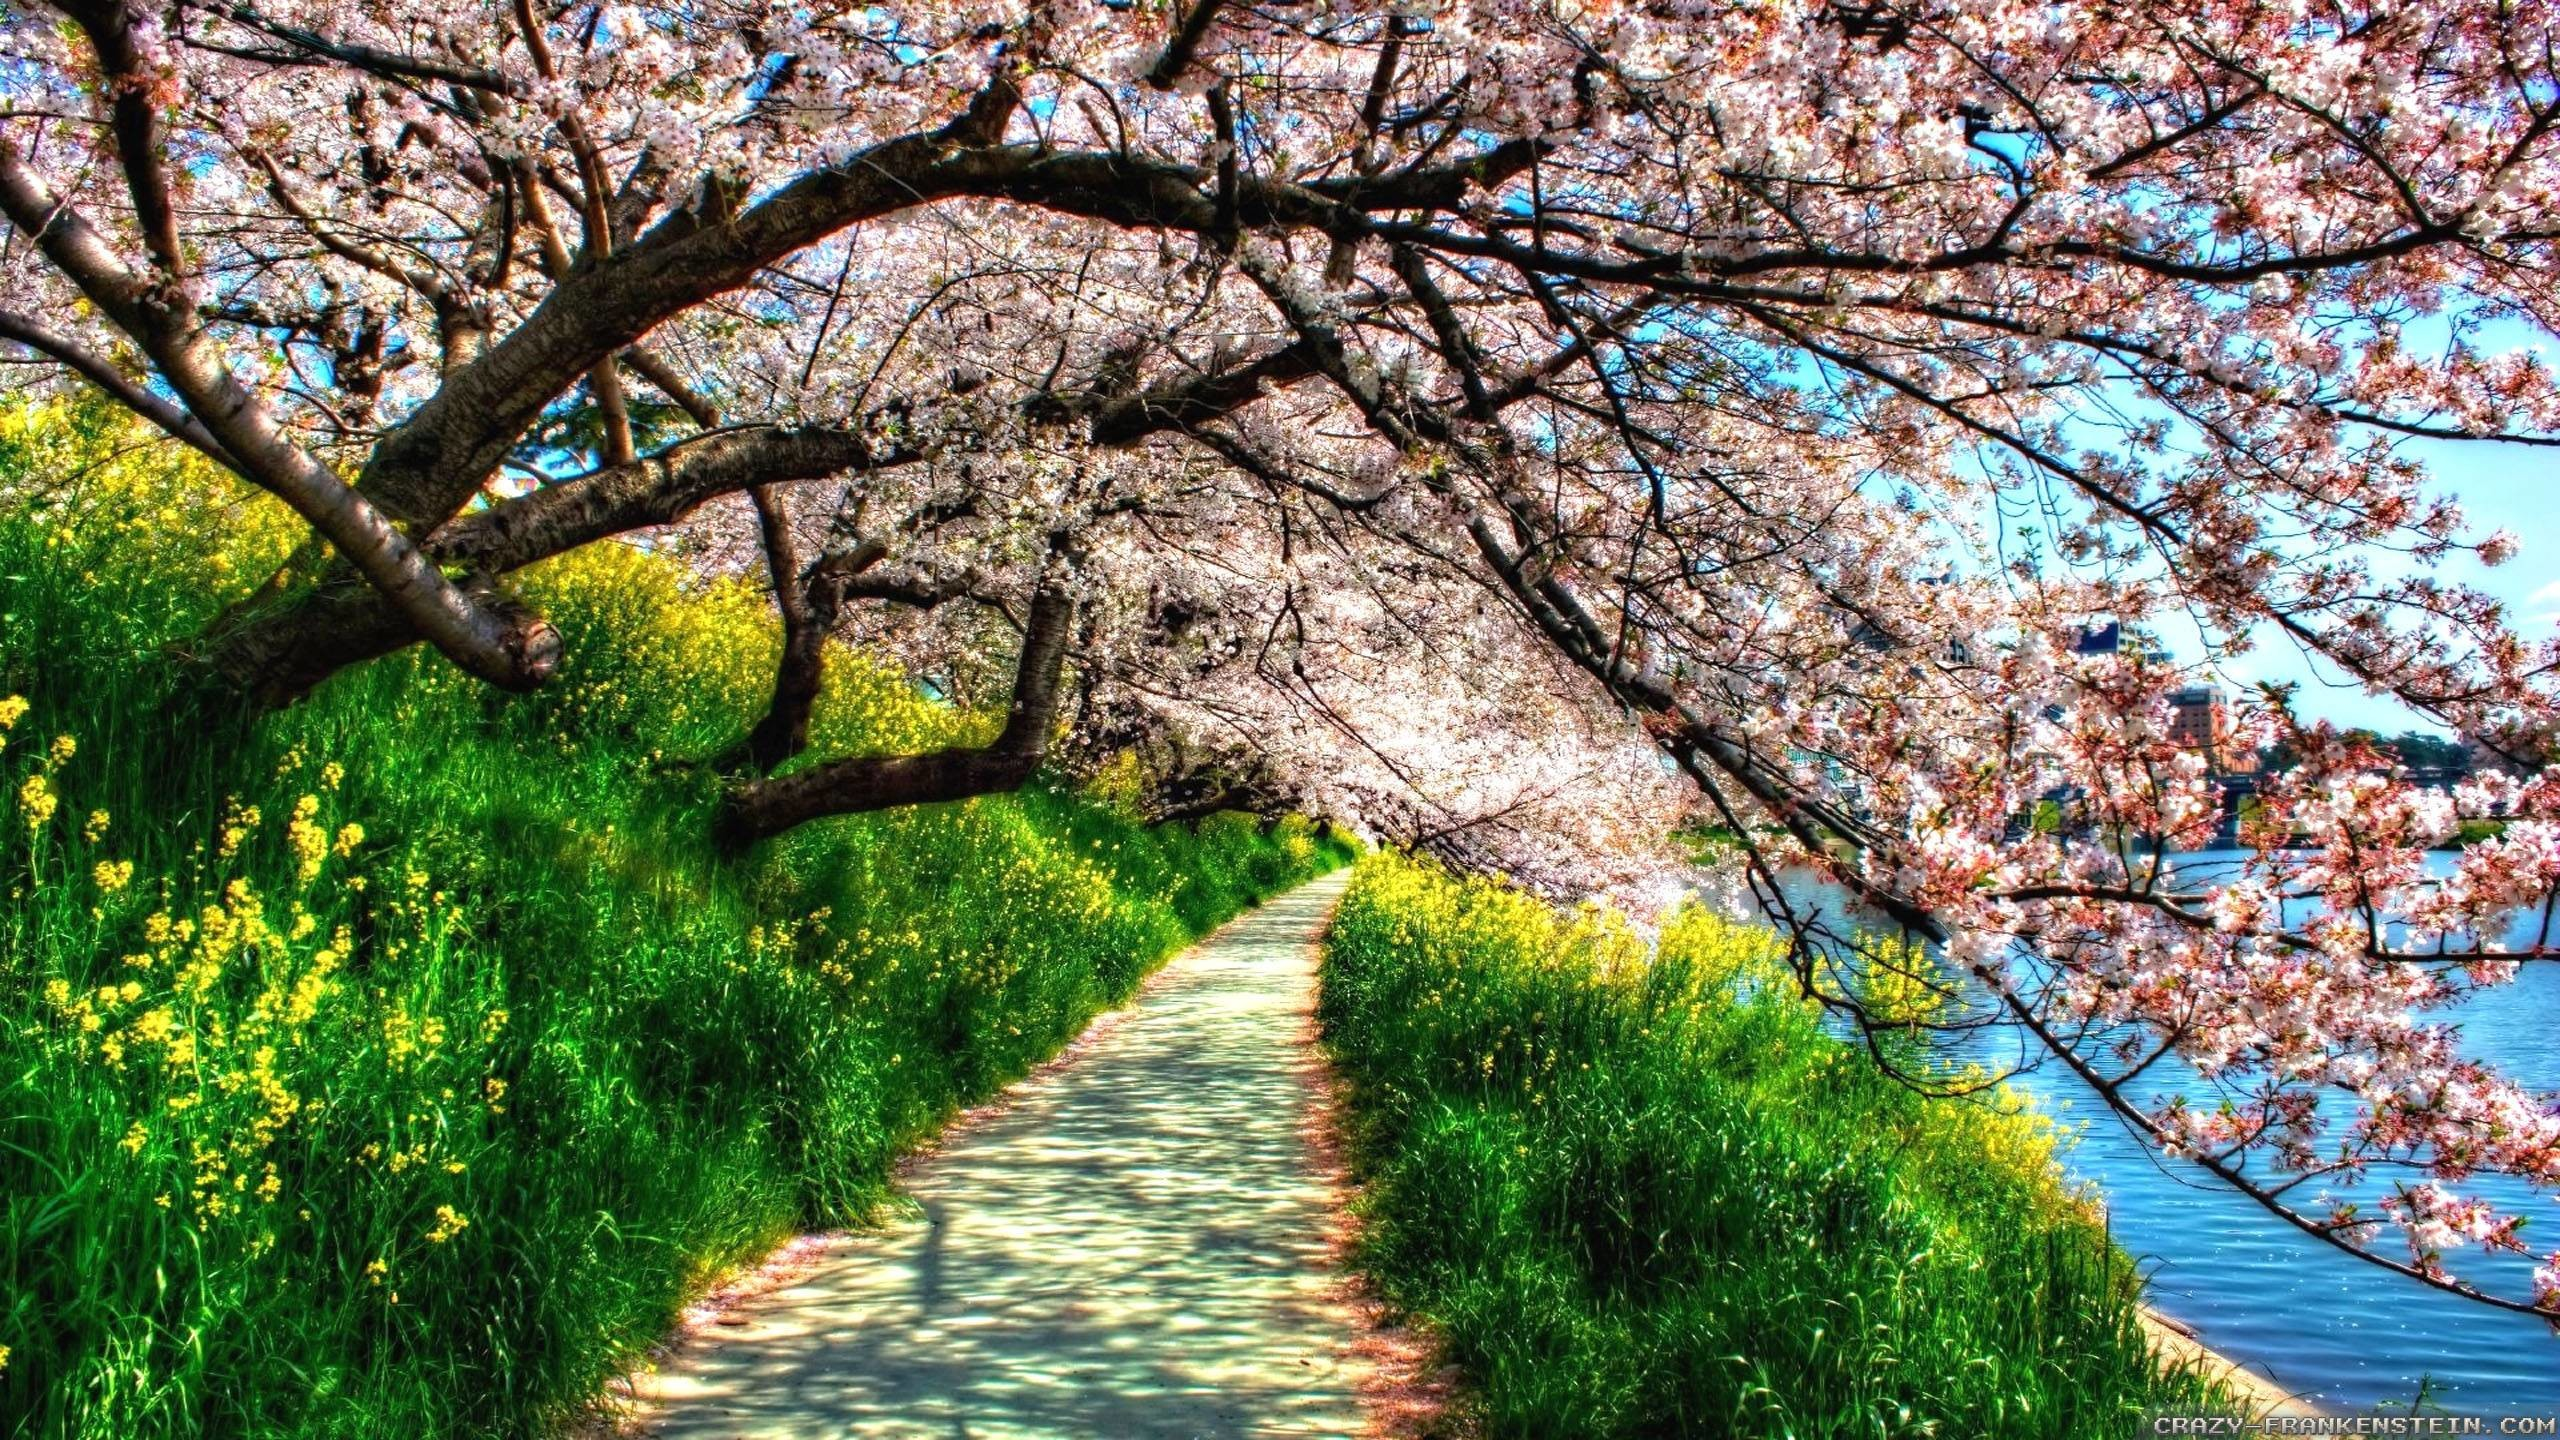 Res: 2560x1440, Spring Nature Photo Images 6 HD Wallpapers | Hdimges.